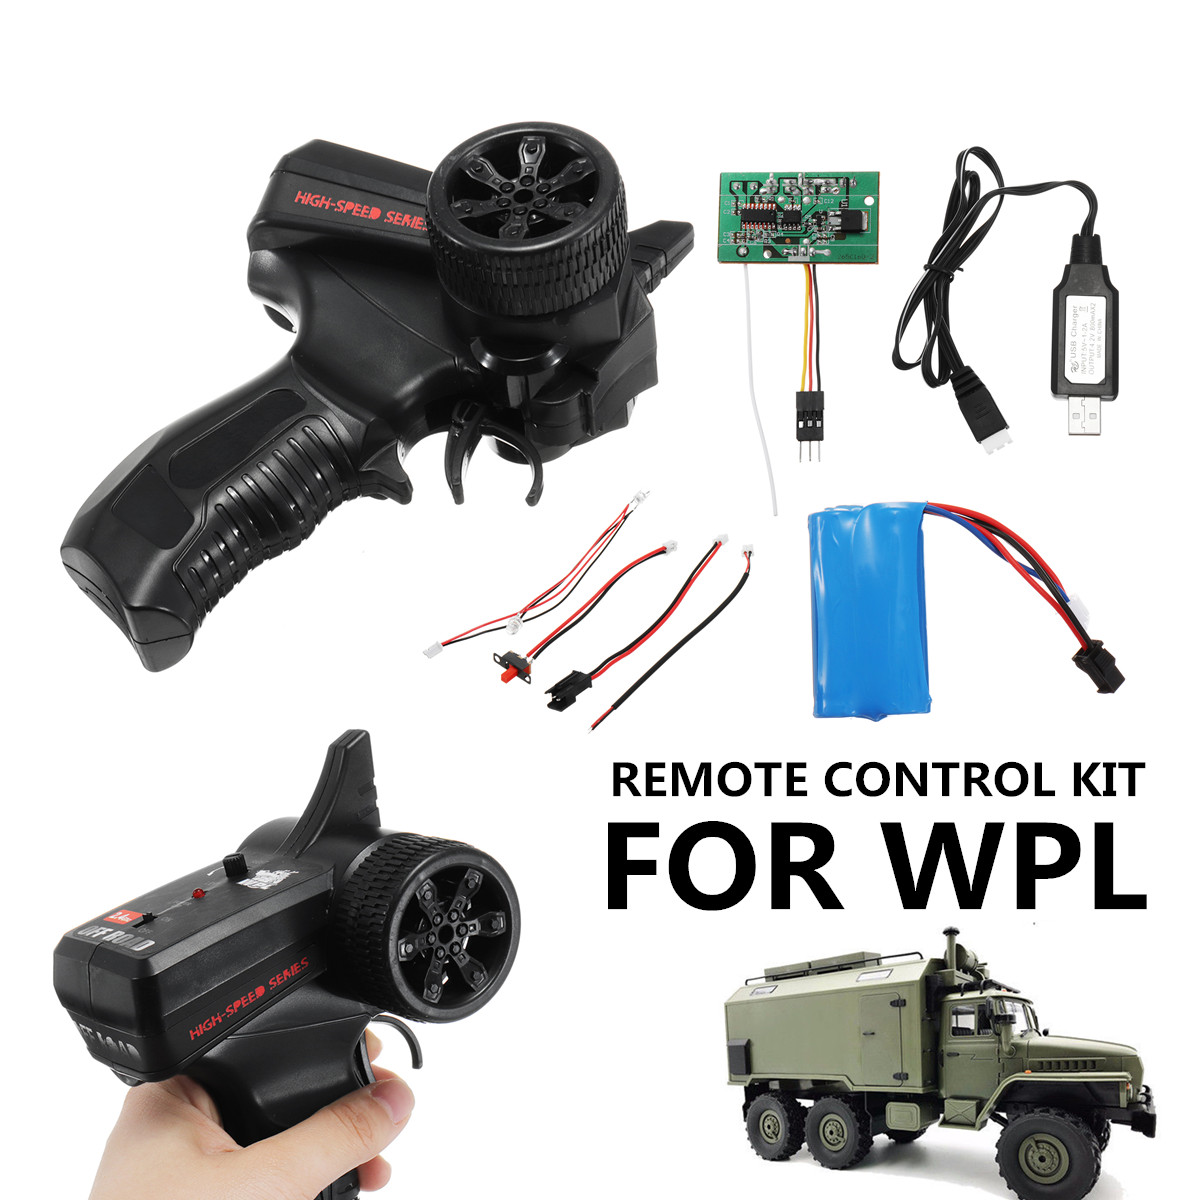 Power/Motor/LED Light/Switch Line Upgrade Remote Control Kit For WPL Full Scale RC Crawler Car Truck Toys Part AccessoriesPower/Motor/LED Light/Switch Line Upgrade Remote Control Kit For WPL Full Scale RC Crawler Car Truck Toys Part Accessories